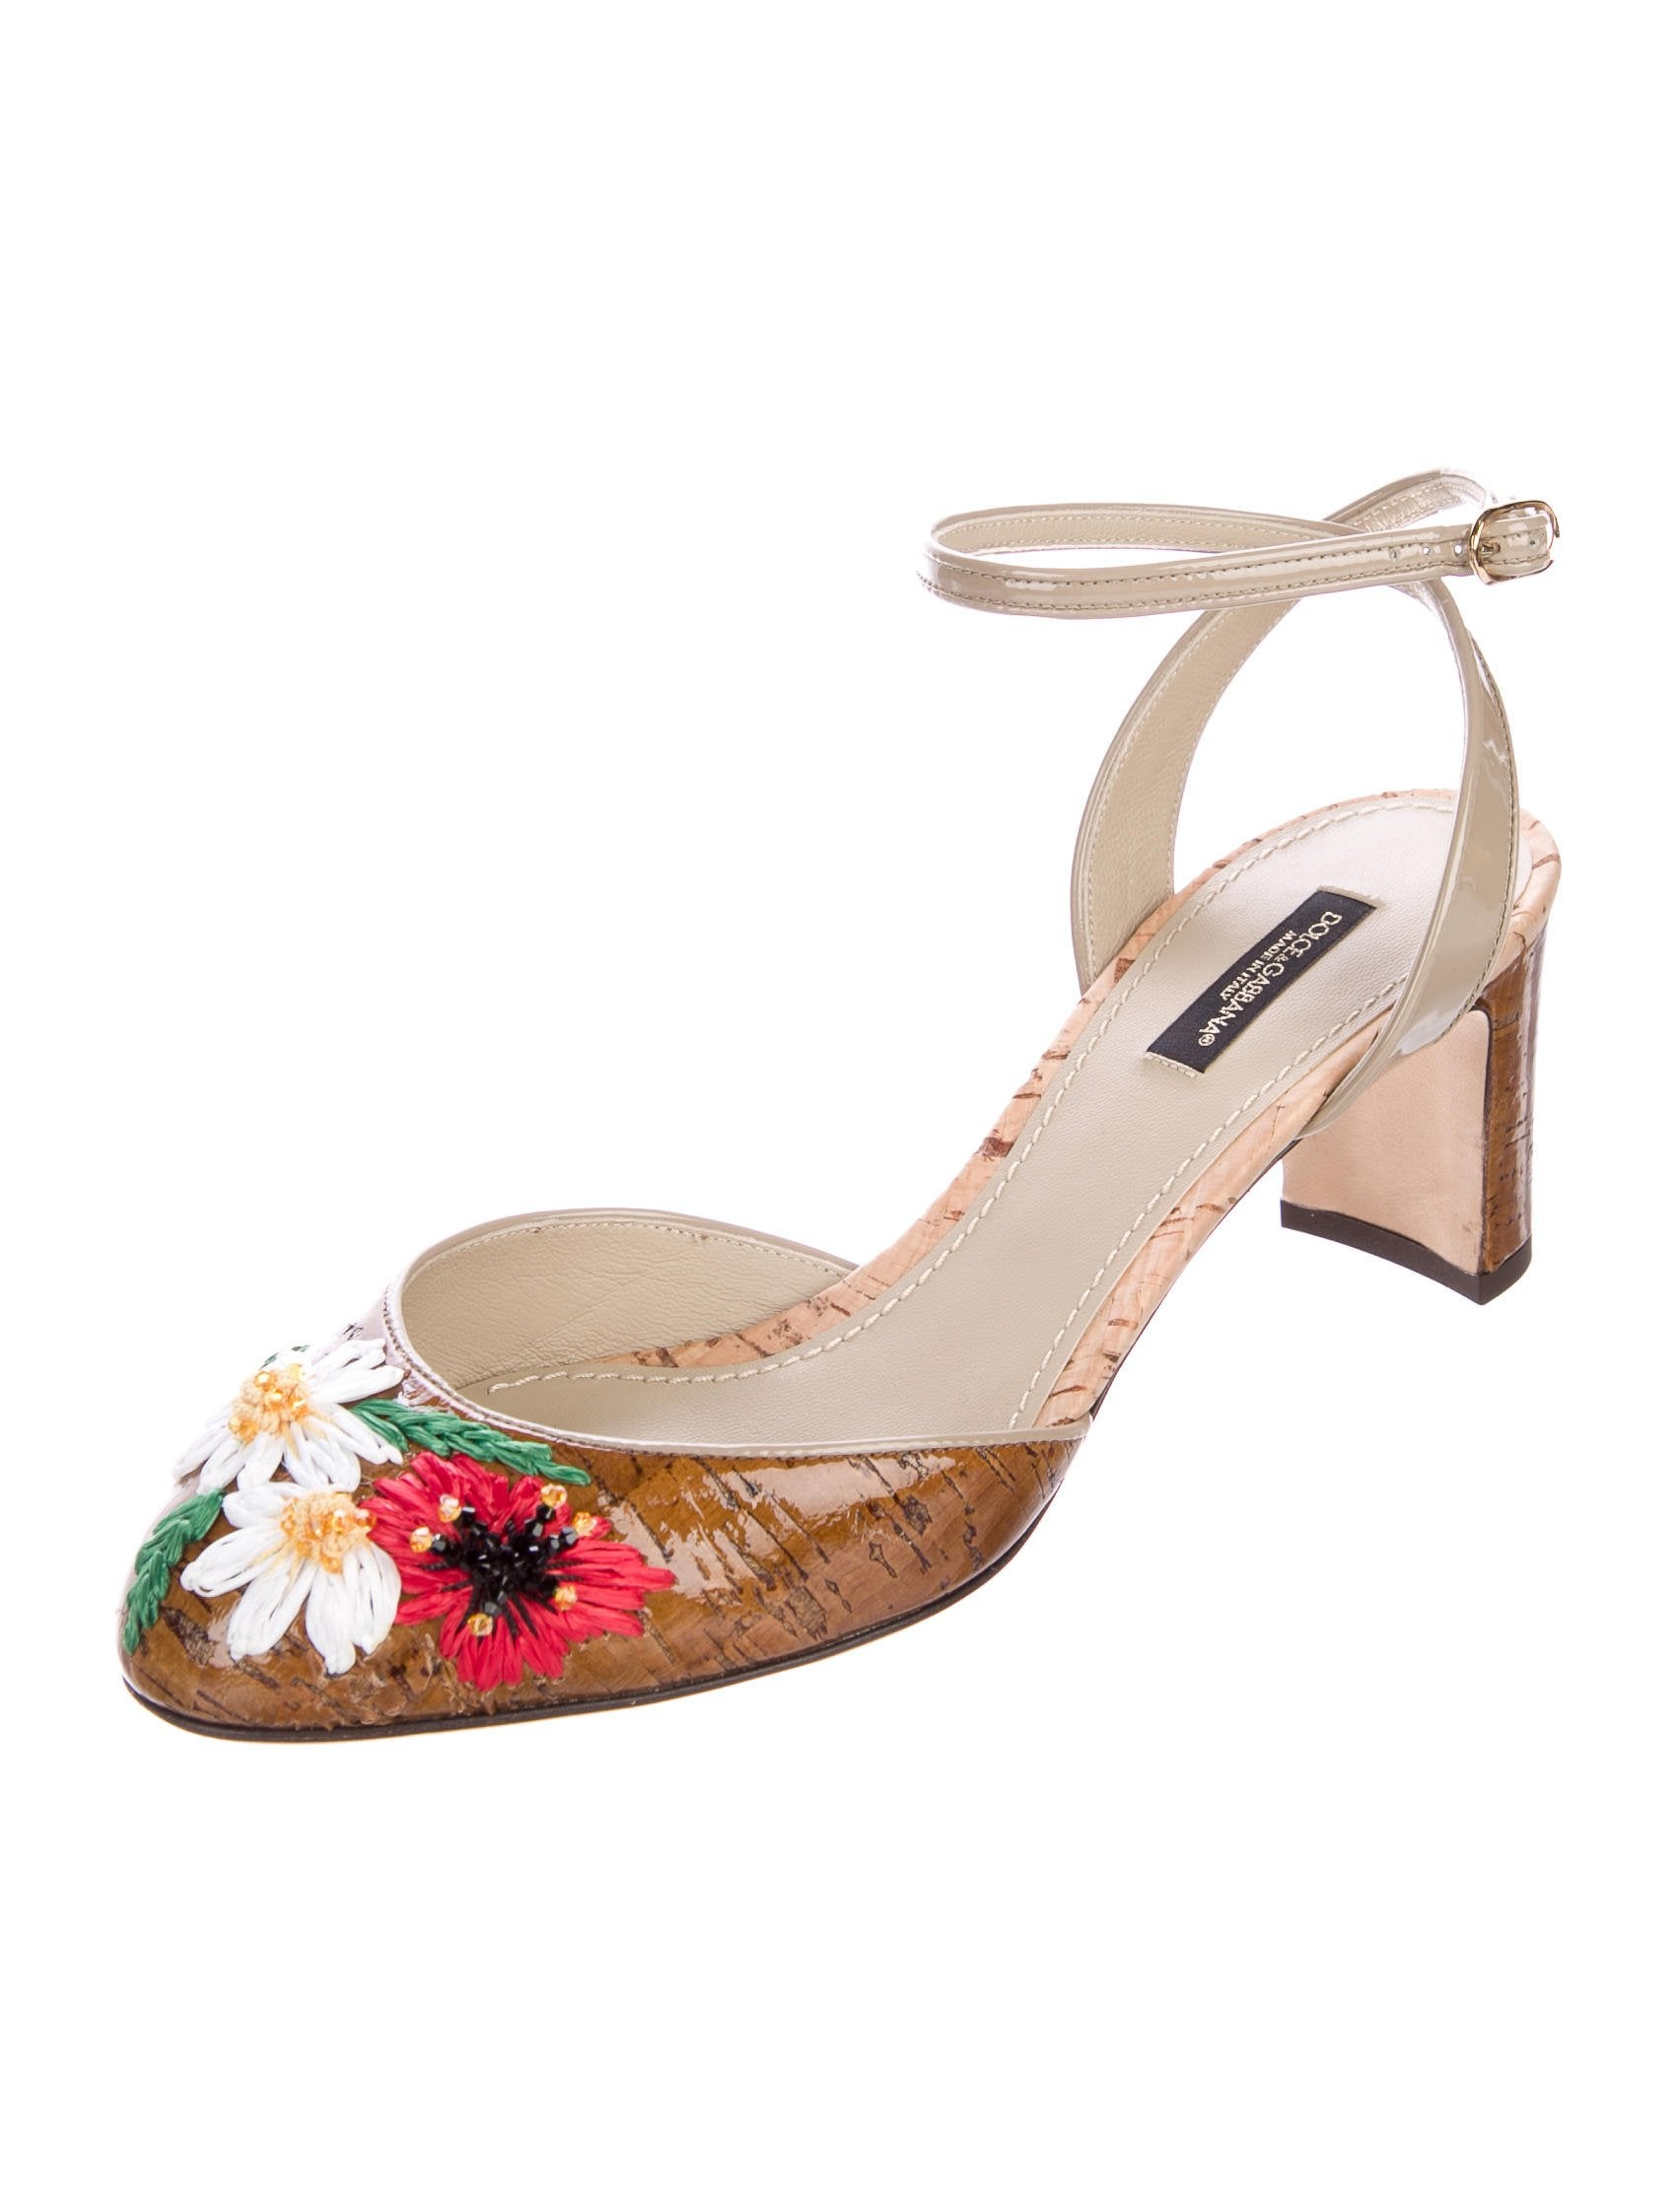 Dolce & Gabbana Floral Cork Pumps w/ Tags choice online Lqx5vo6iP